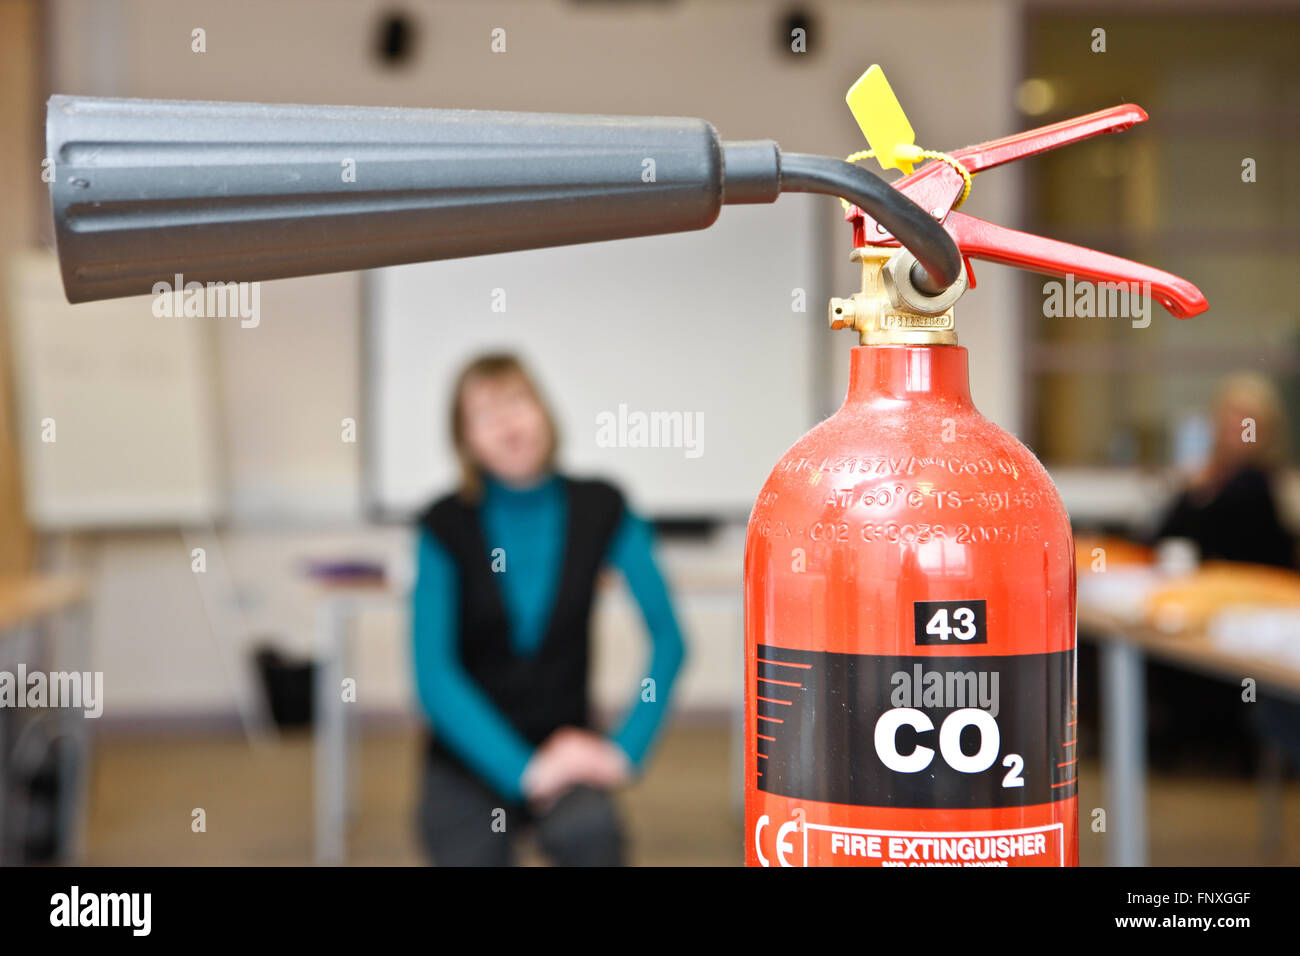 Co2 Fire extinguisher - Stock Image